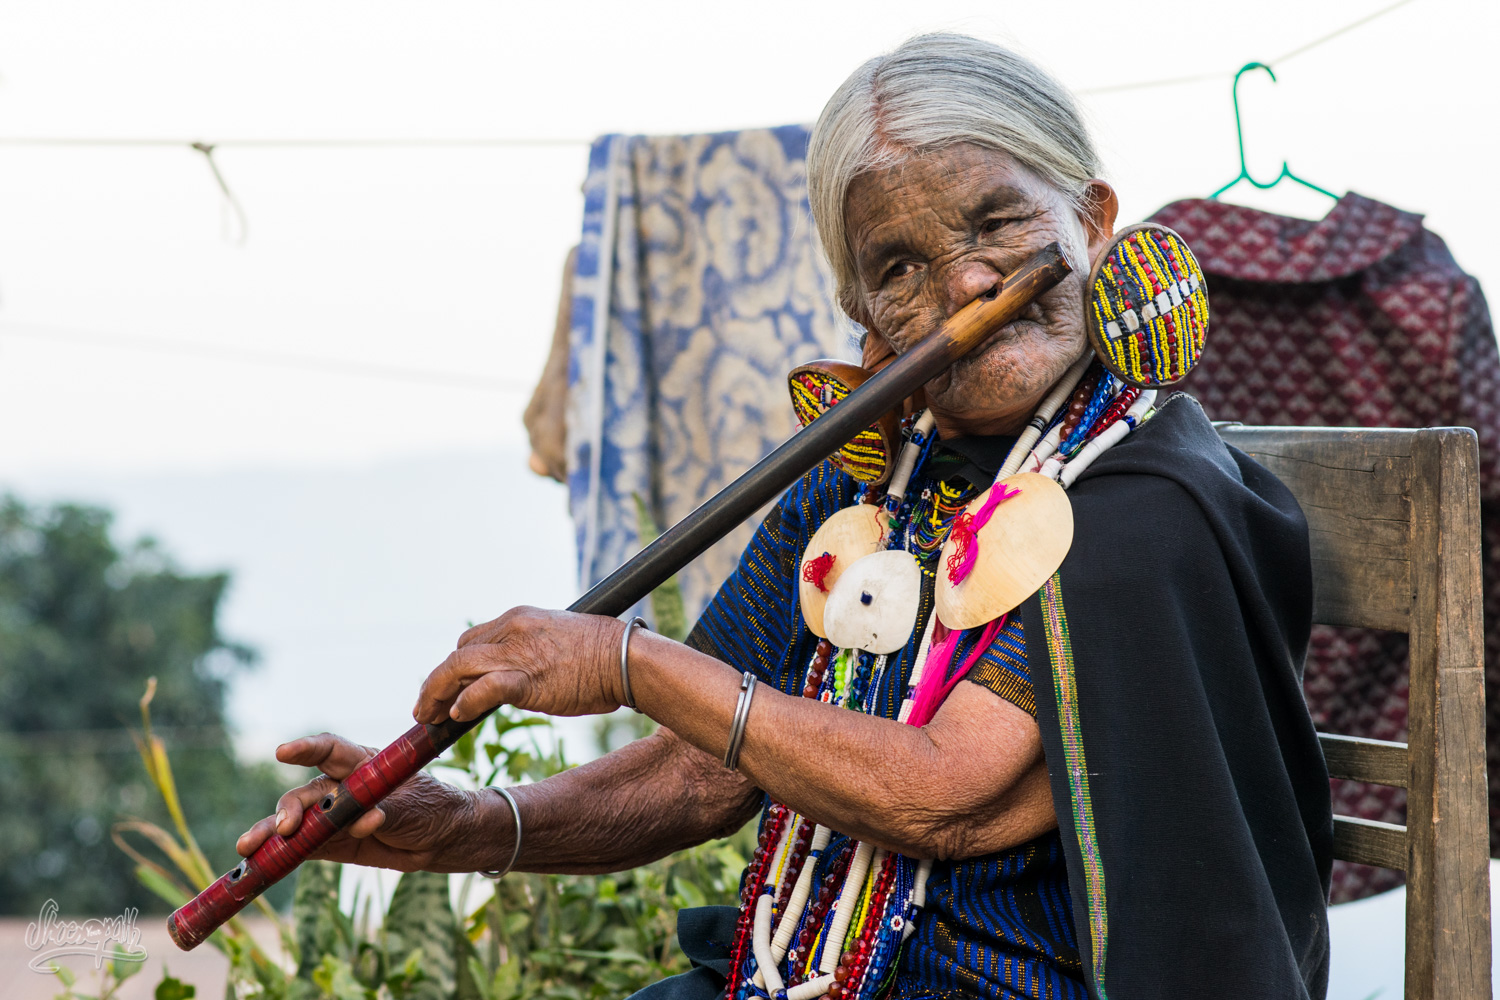 Daw Yaw Hting, 88 years old, one of the last Chin women with a tatoo on her face, playing flute with her nose !